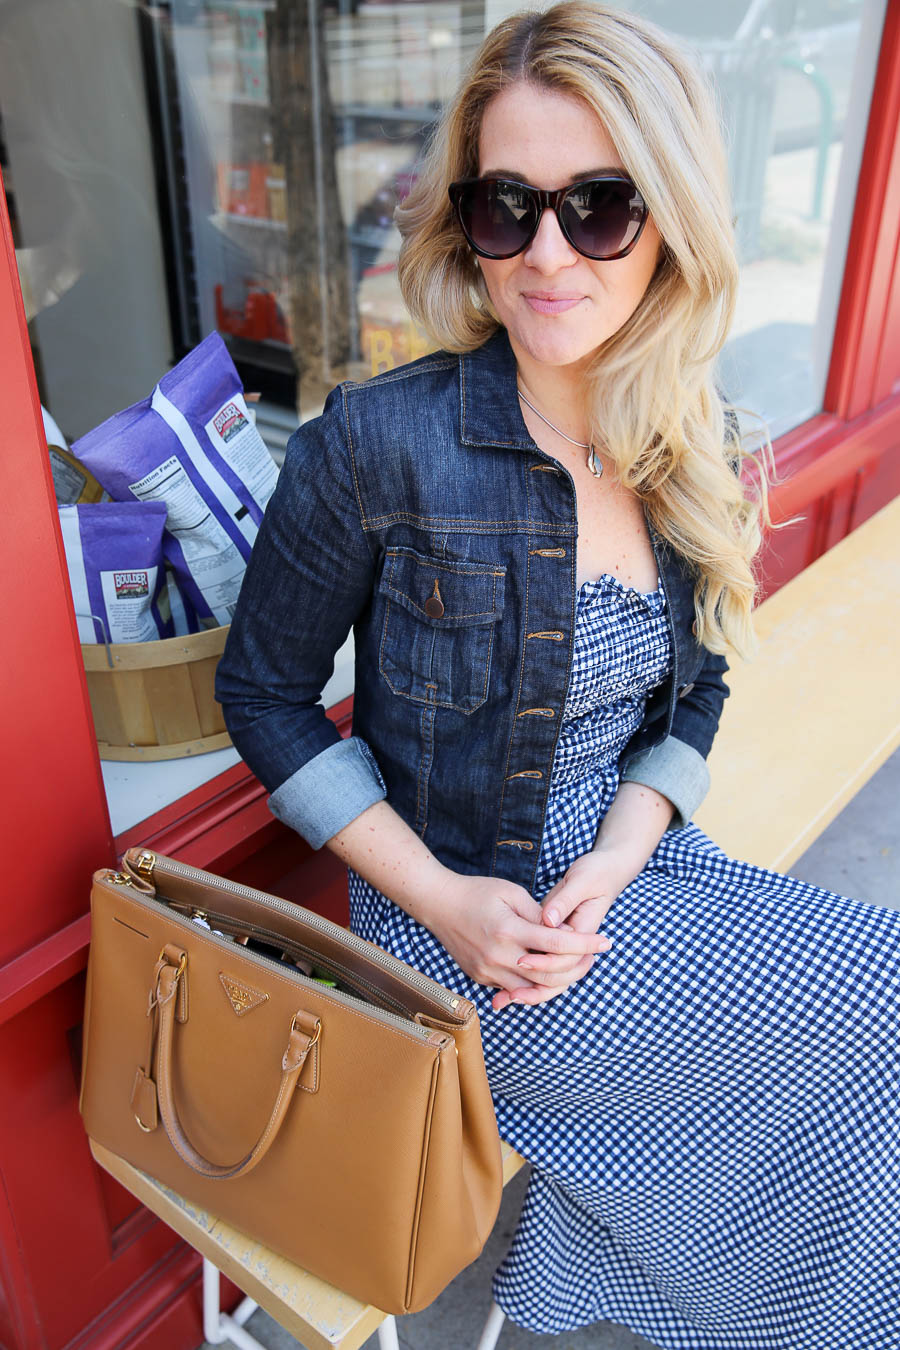 Navy Blue Gingham Dress Outfit - Matching Coordinates Trend